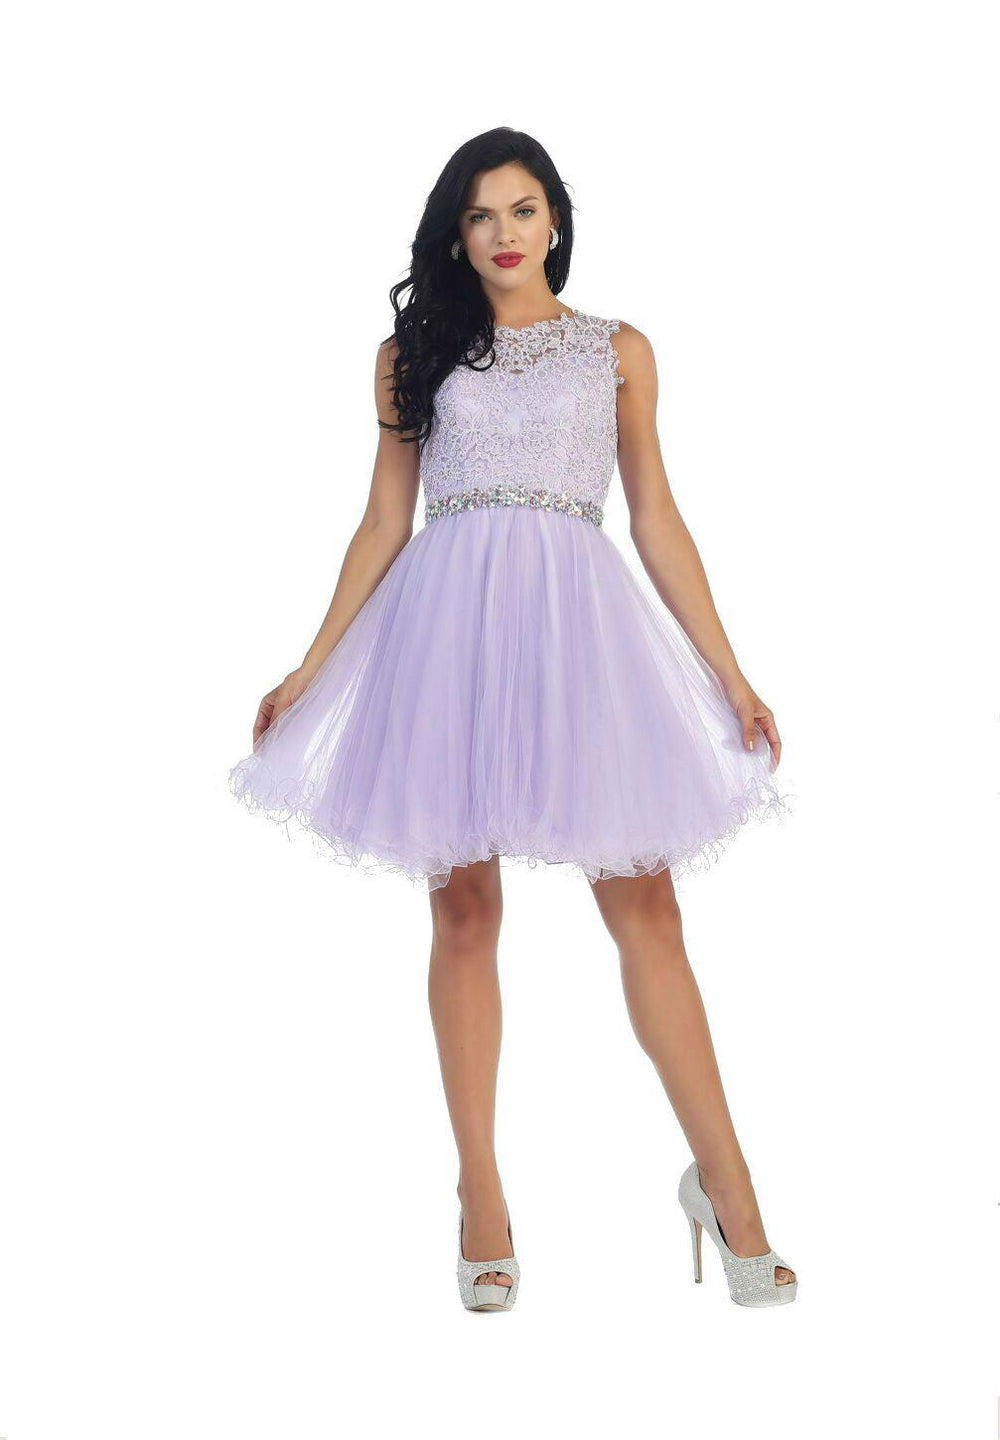 Short Prom Homecoming Graduation Dress - The Dress Outlet Lilac